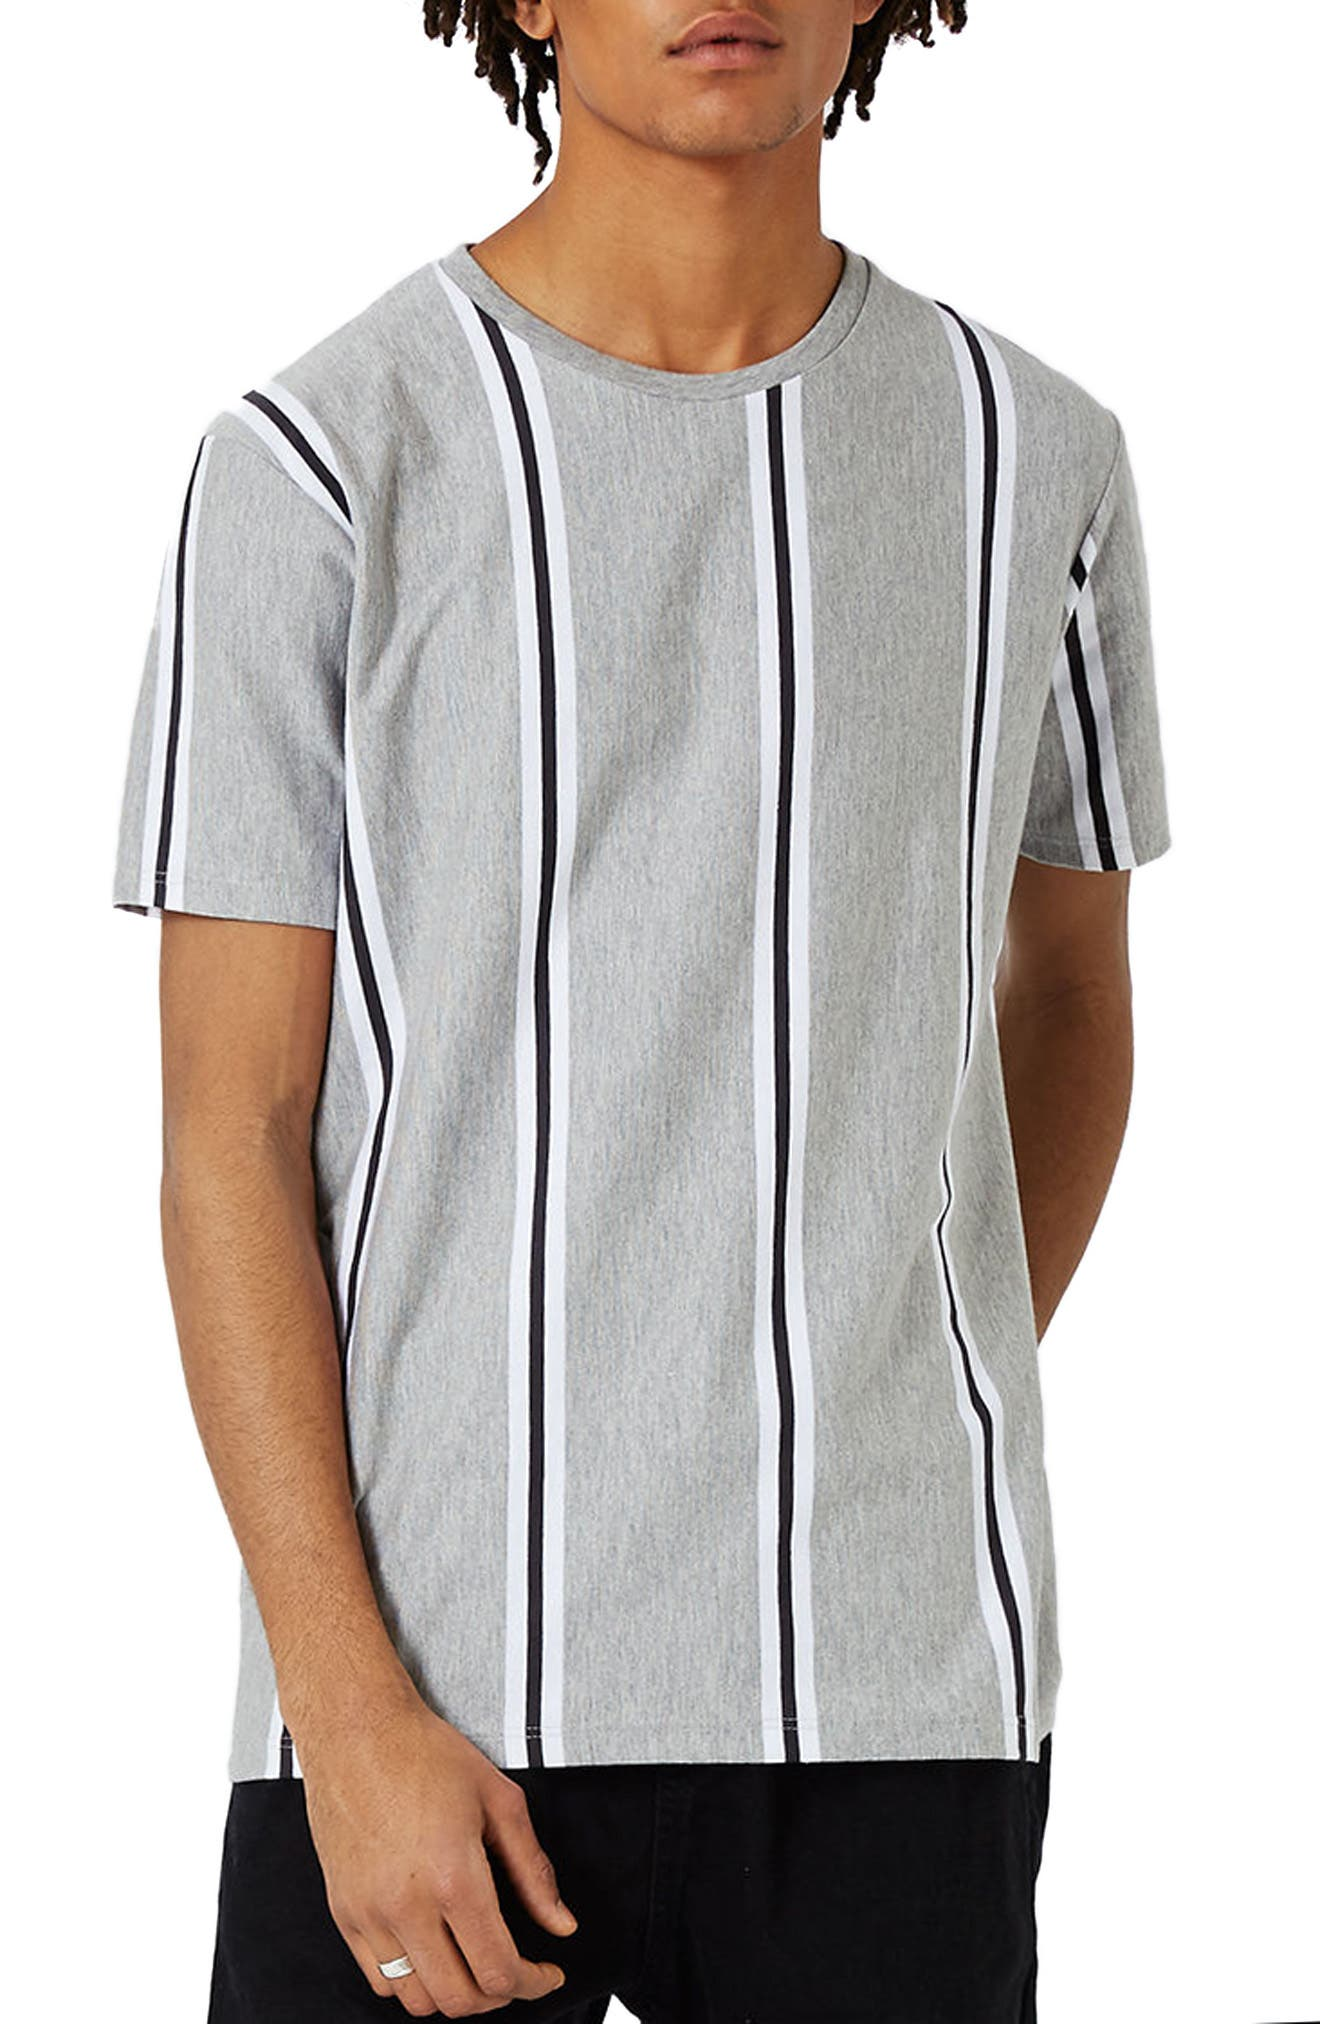 Topman Vertical Stripe T-Shirt